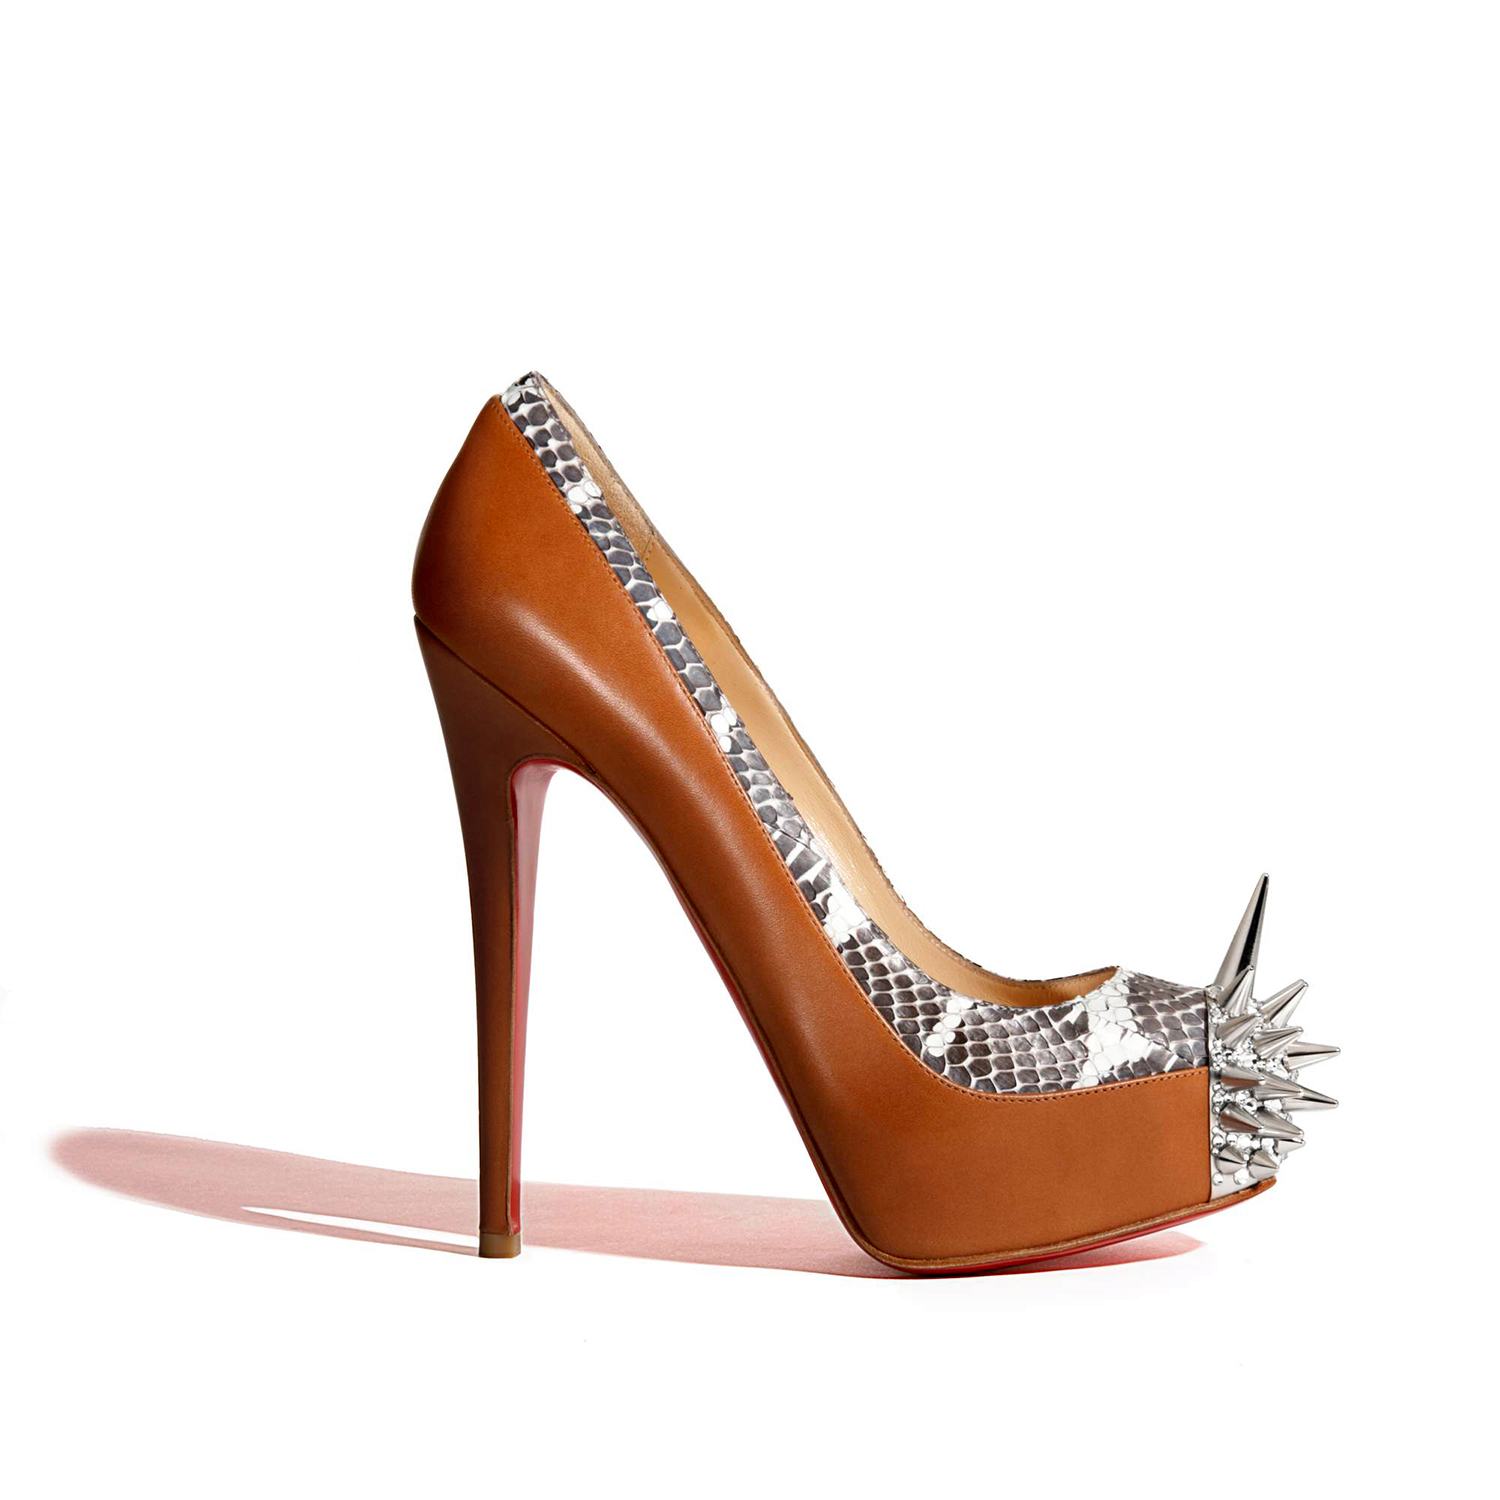 Barneys_Christian_Louboutin_shoes_fashion_photography.jpg